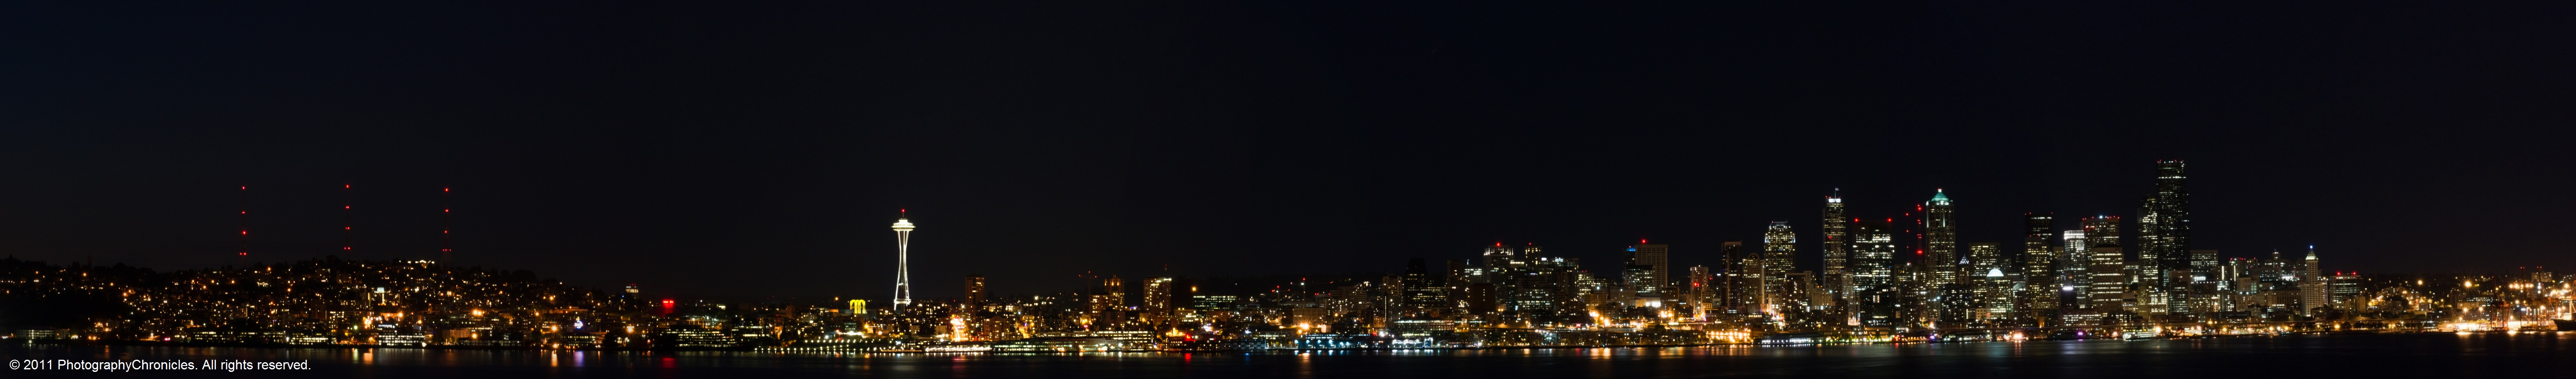 city night skyline panorama - photo #22